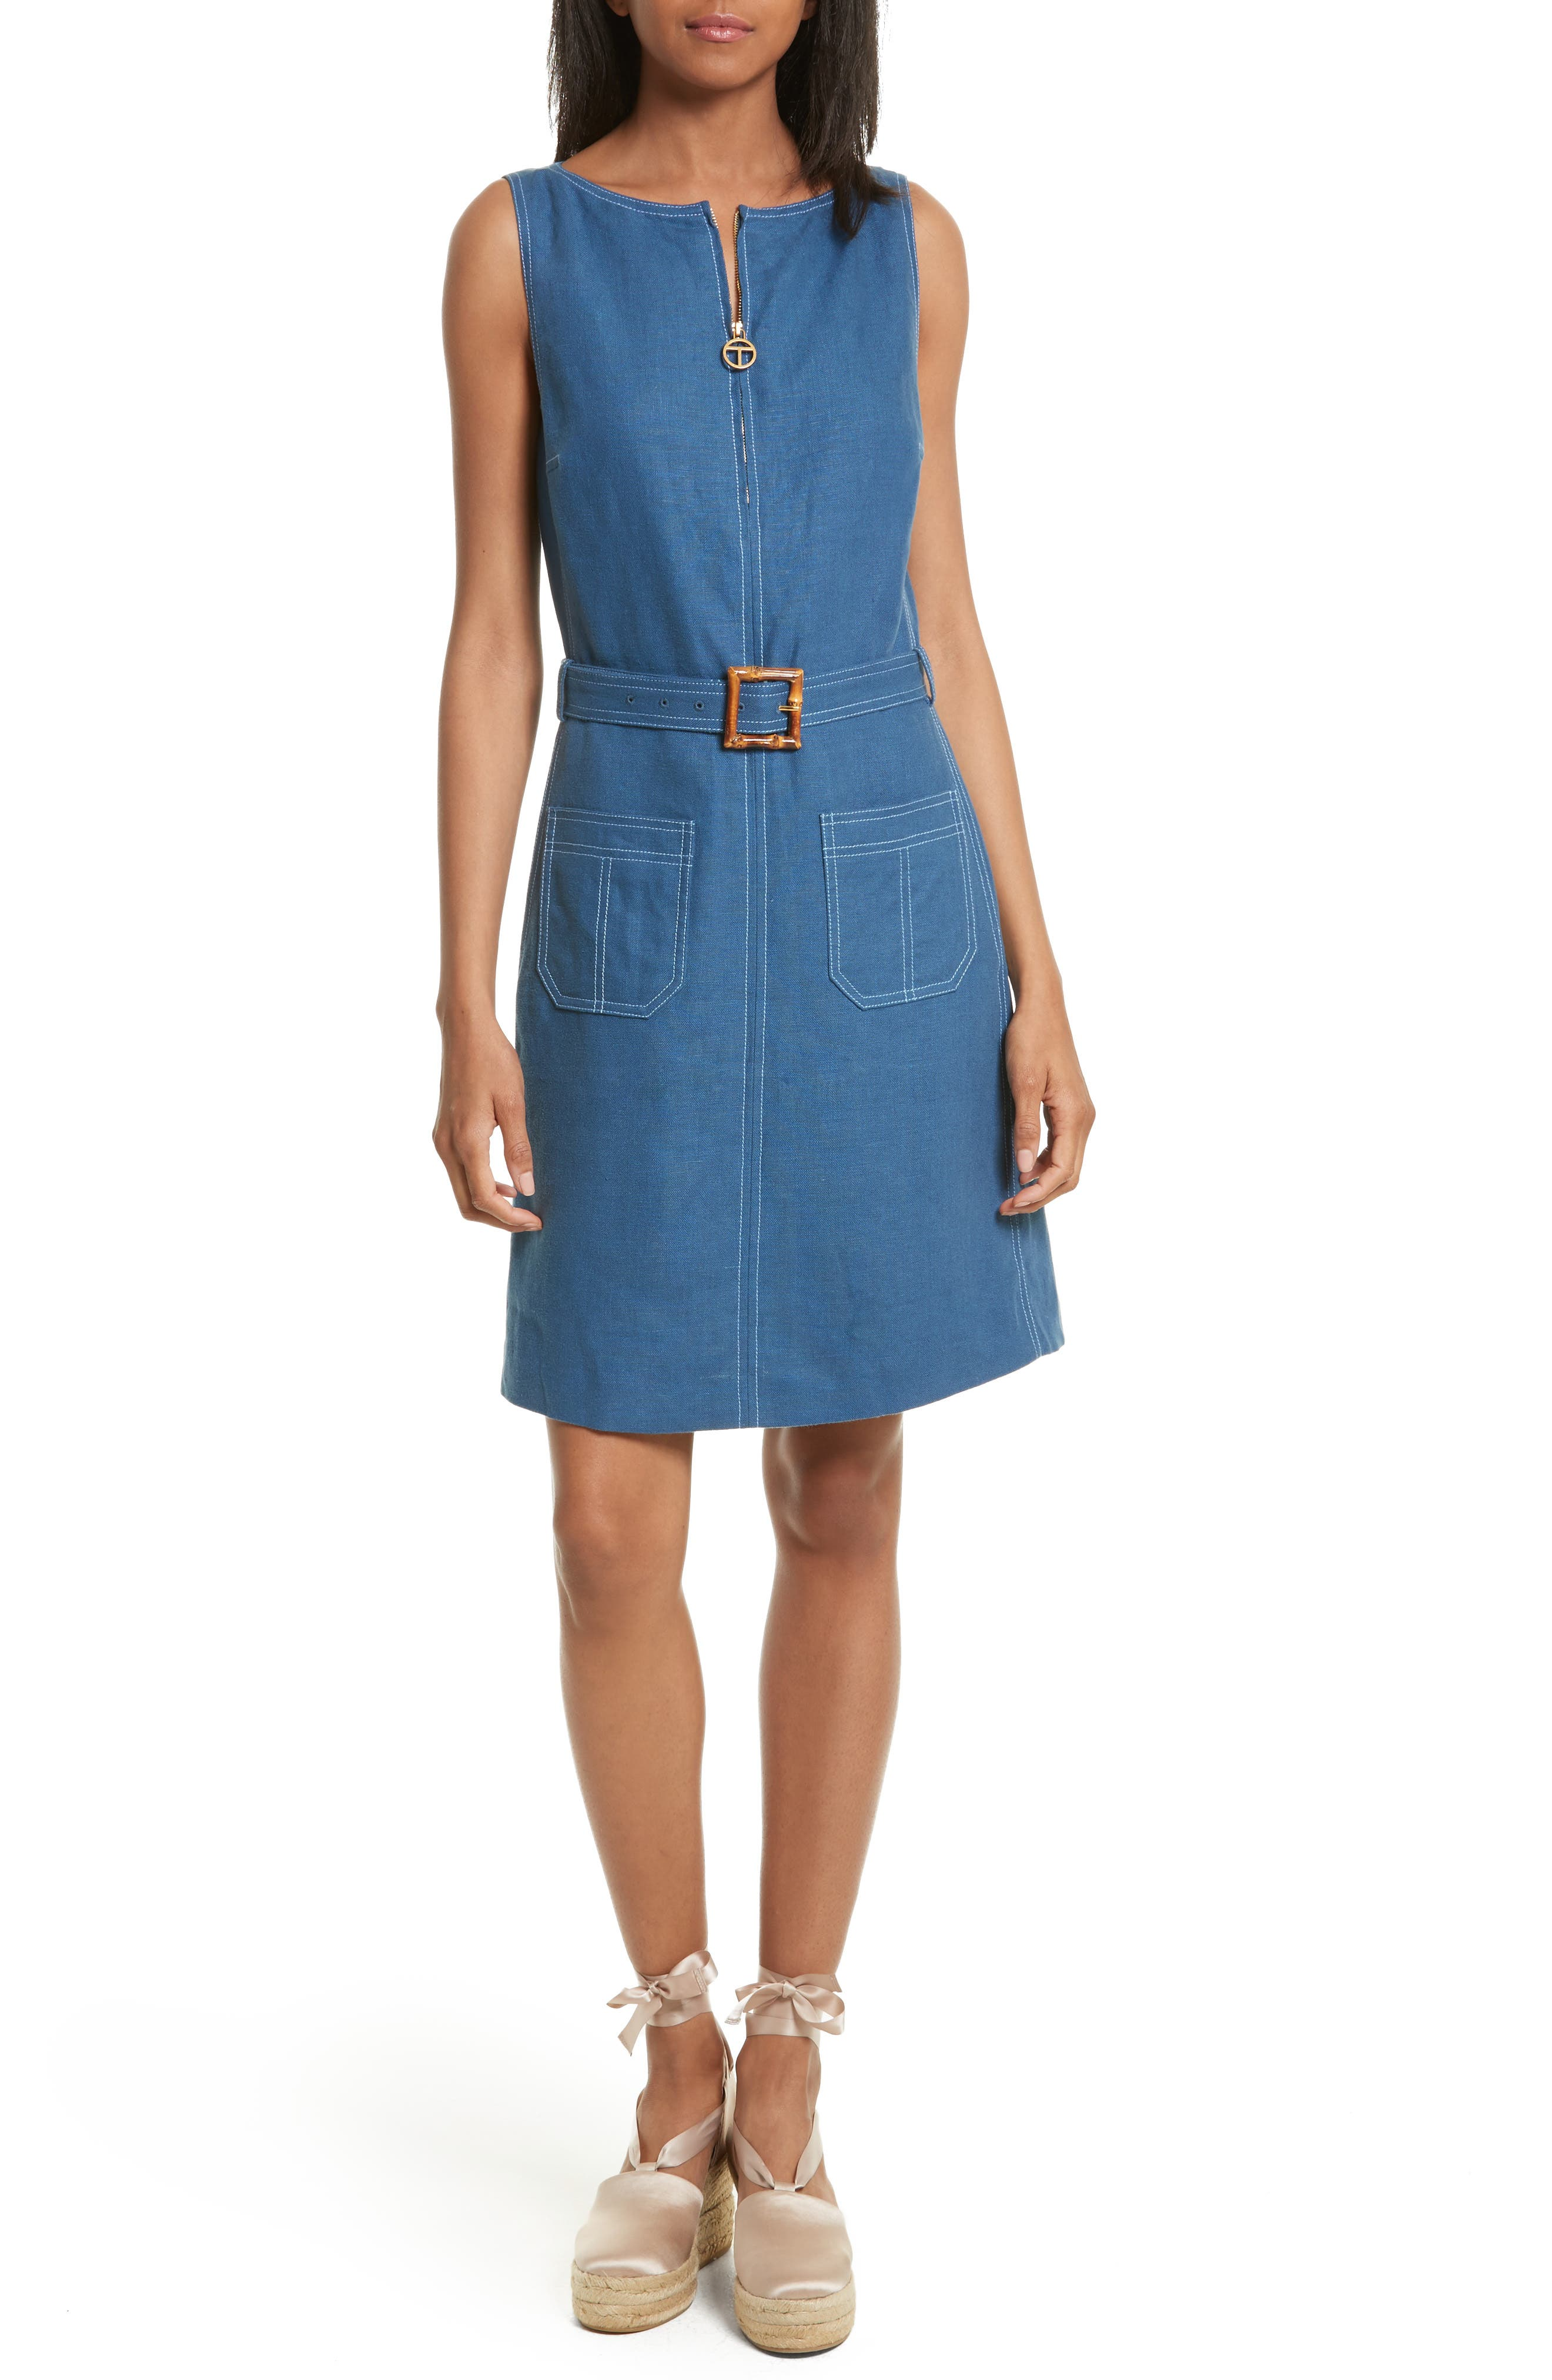 Alternate Image 1 Selected - Tory Burch Nadia Linen A-Line Dress